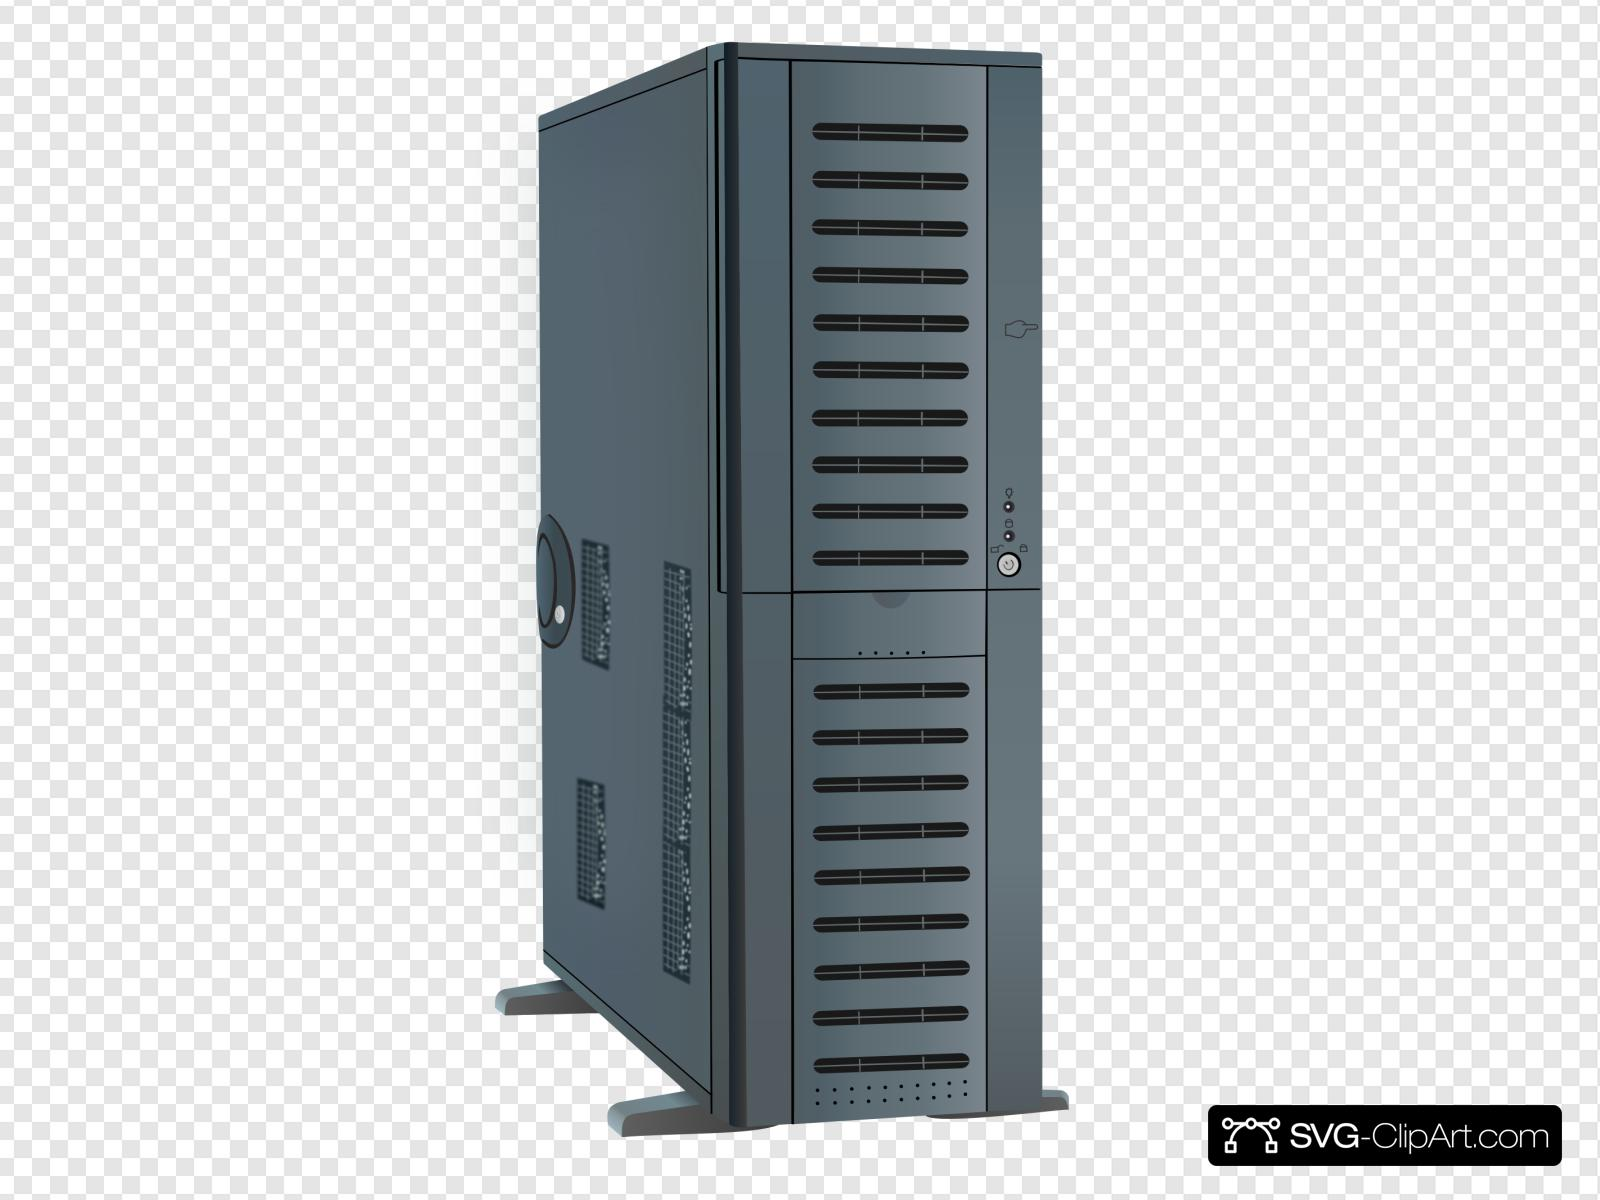 Computer Tower Case Clip art, Icon and SVG.